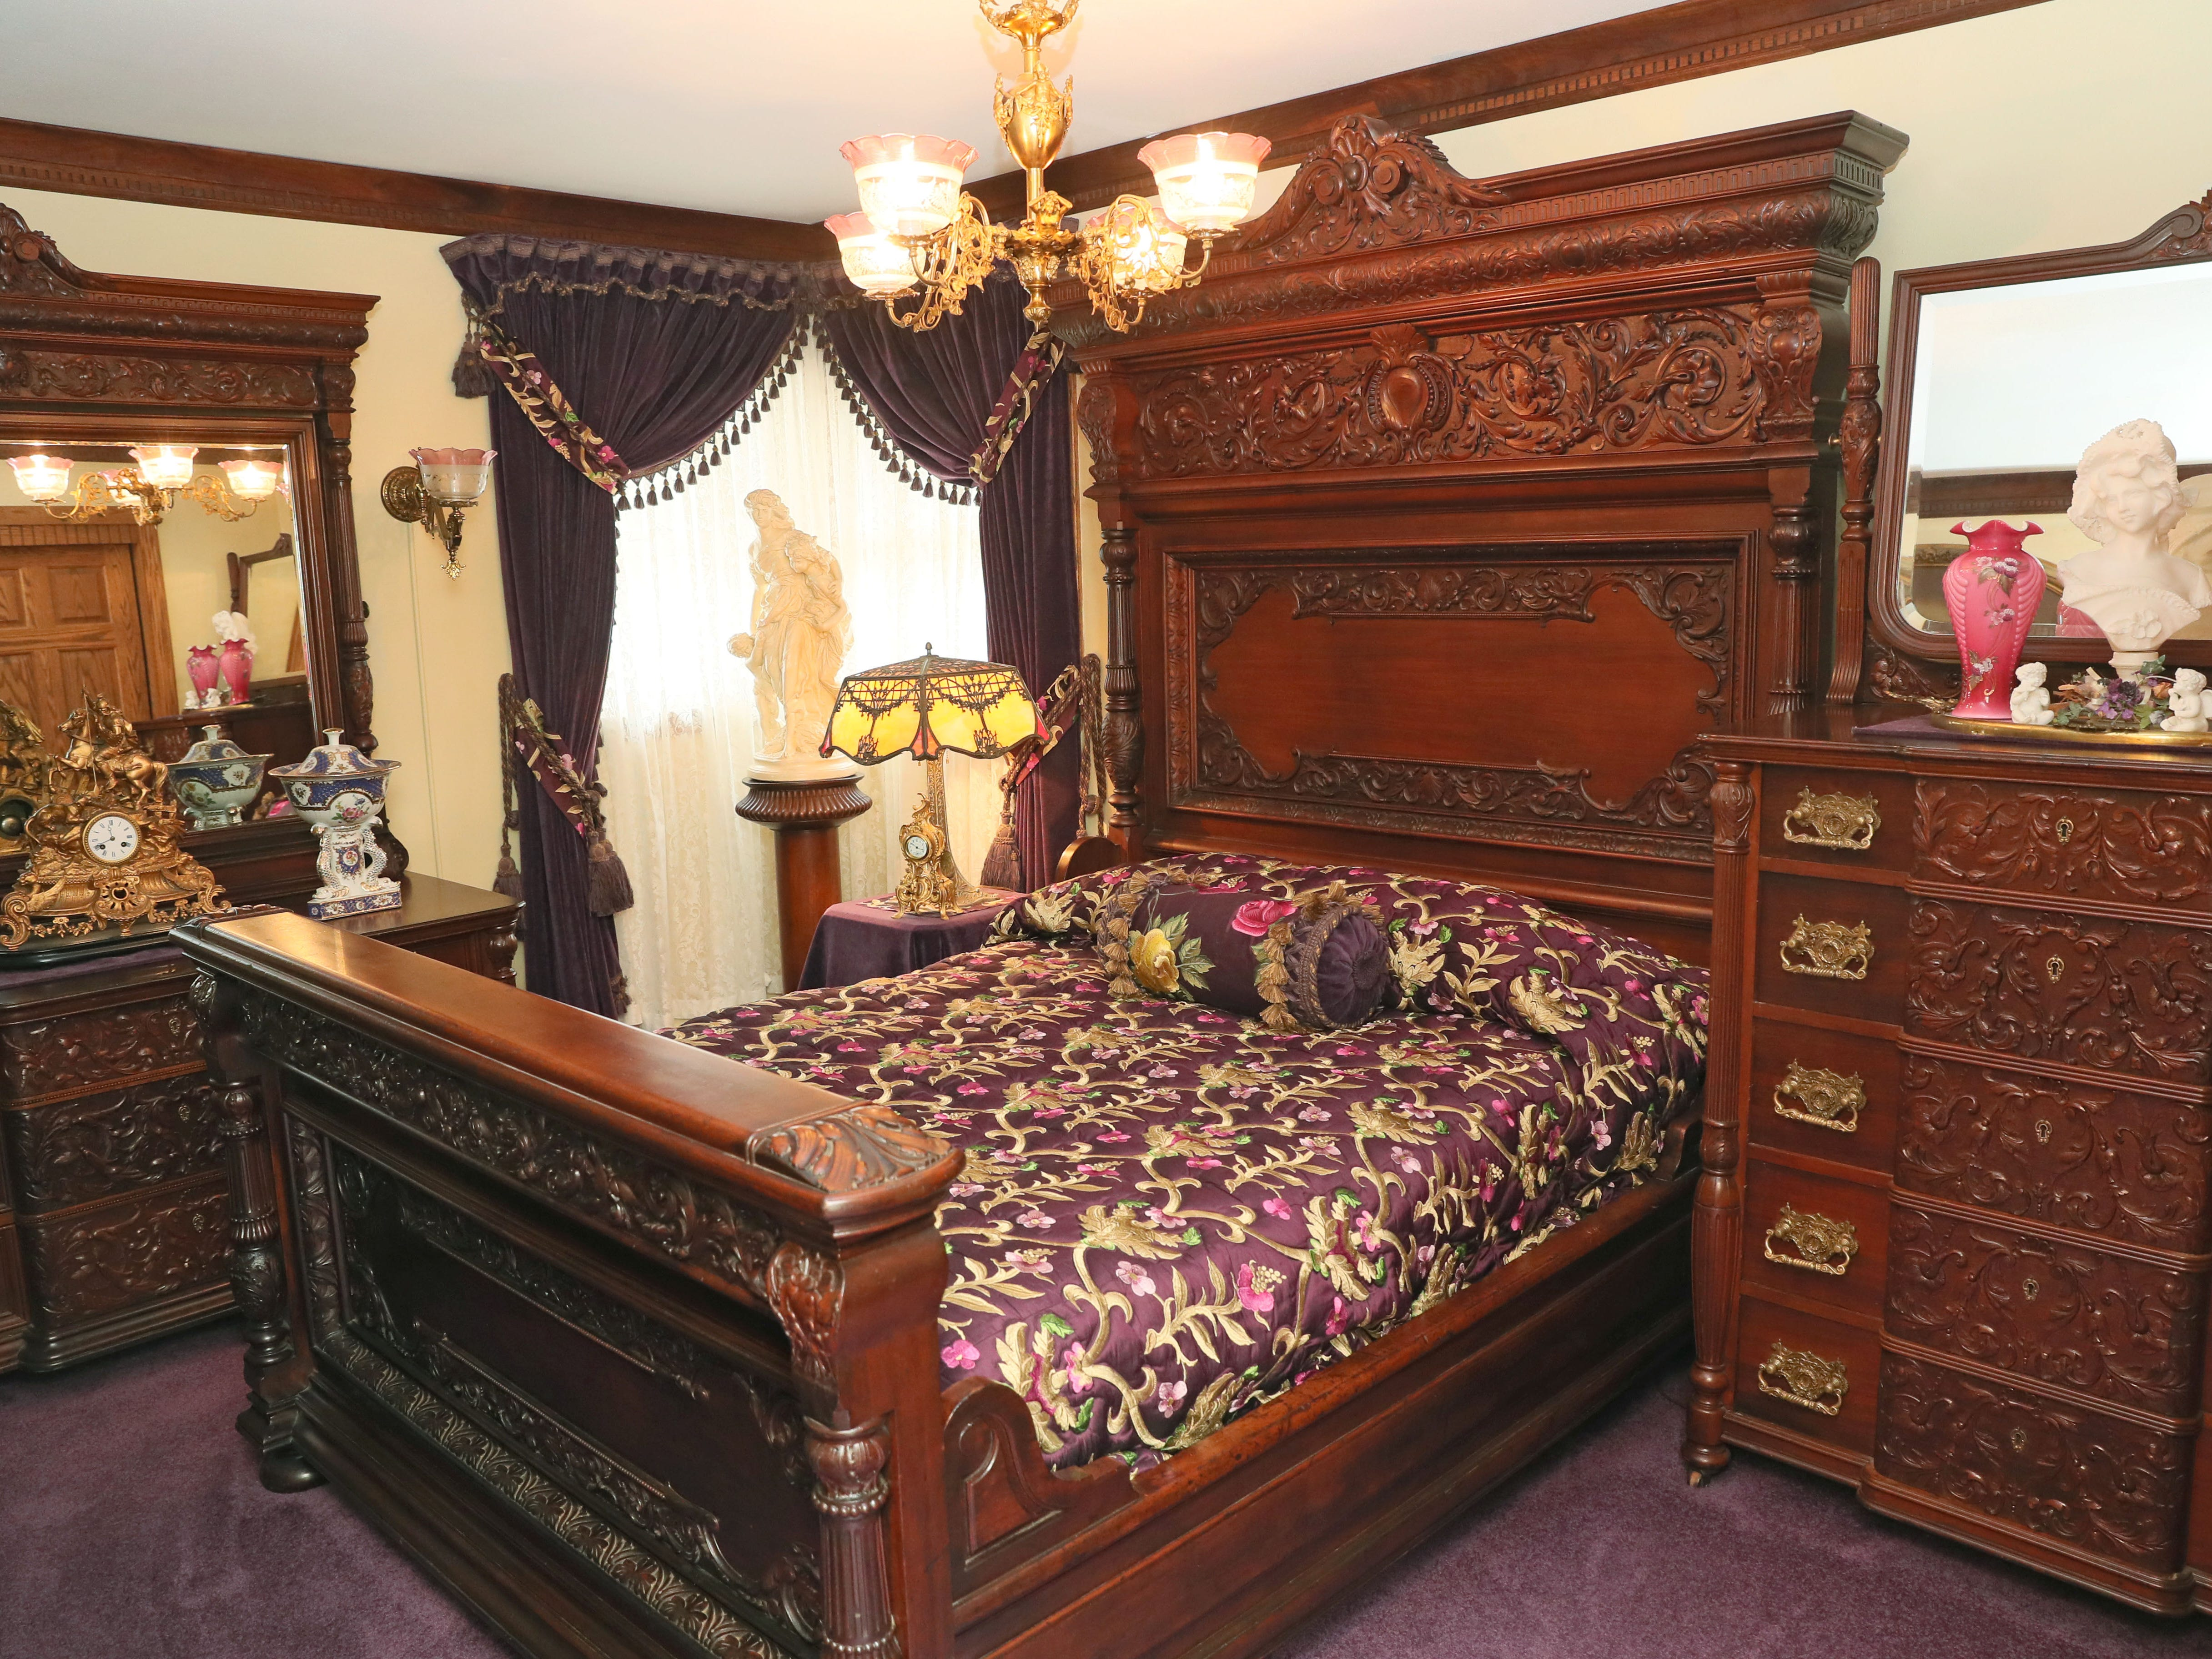 The guest bedroom has a R.J. Horner bedroom set from the 1880s. The fabric on the bed is a reproduction of one from St. James Castle in England.